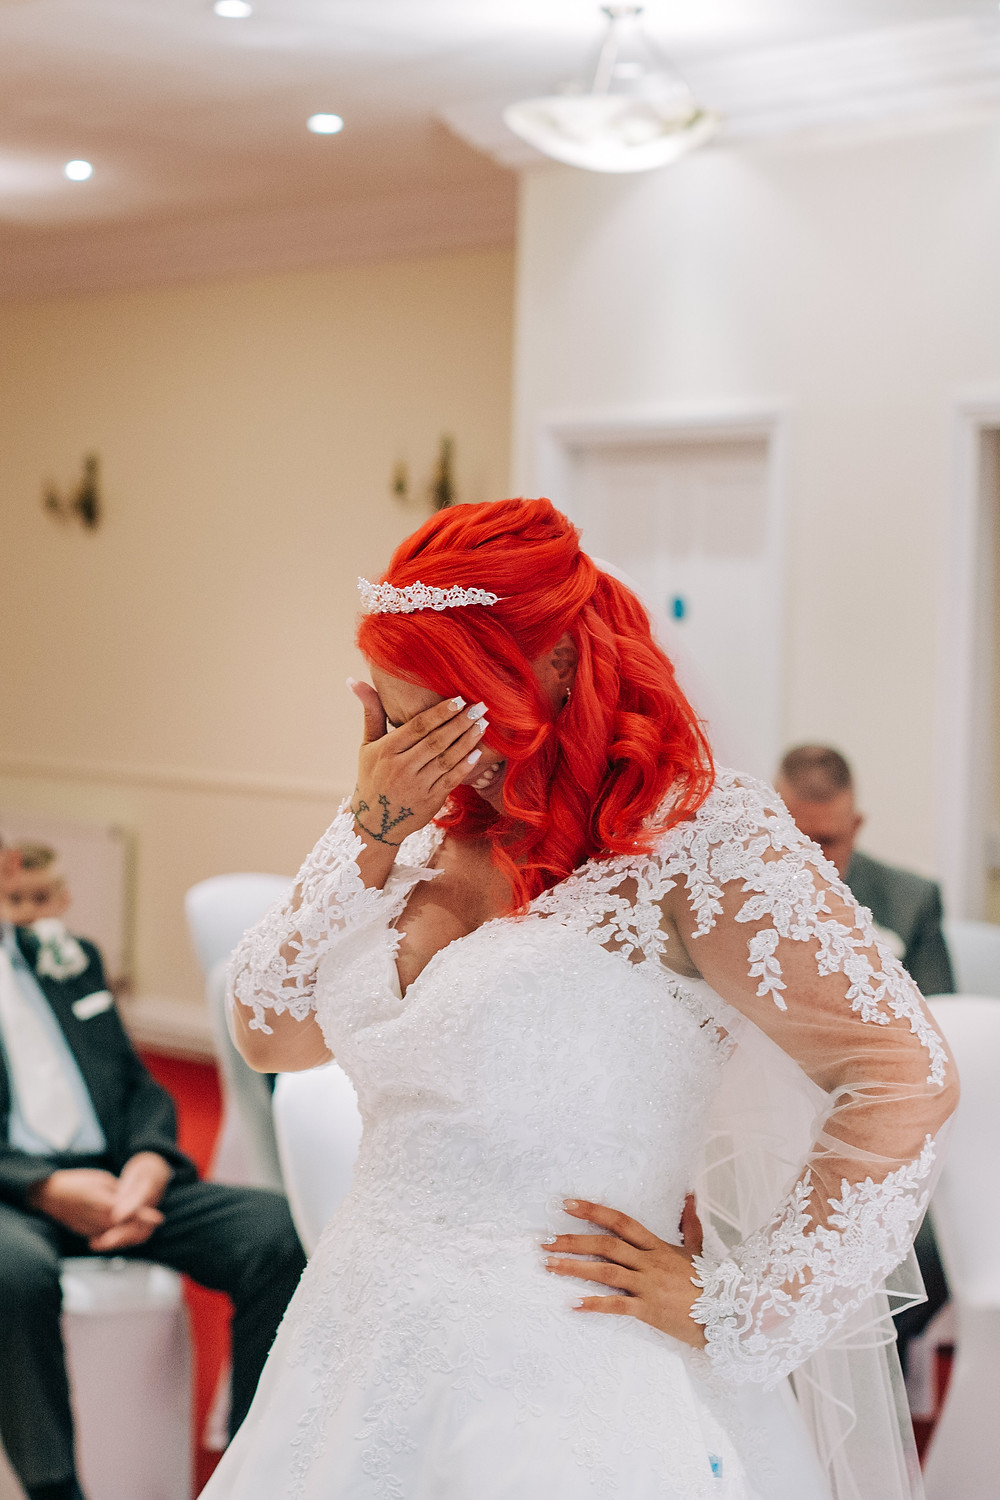 Colourful documentary style wedding photography showing bride during ceremony Holiday Inn Newcastle Jesmond